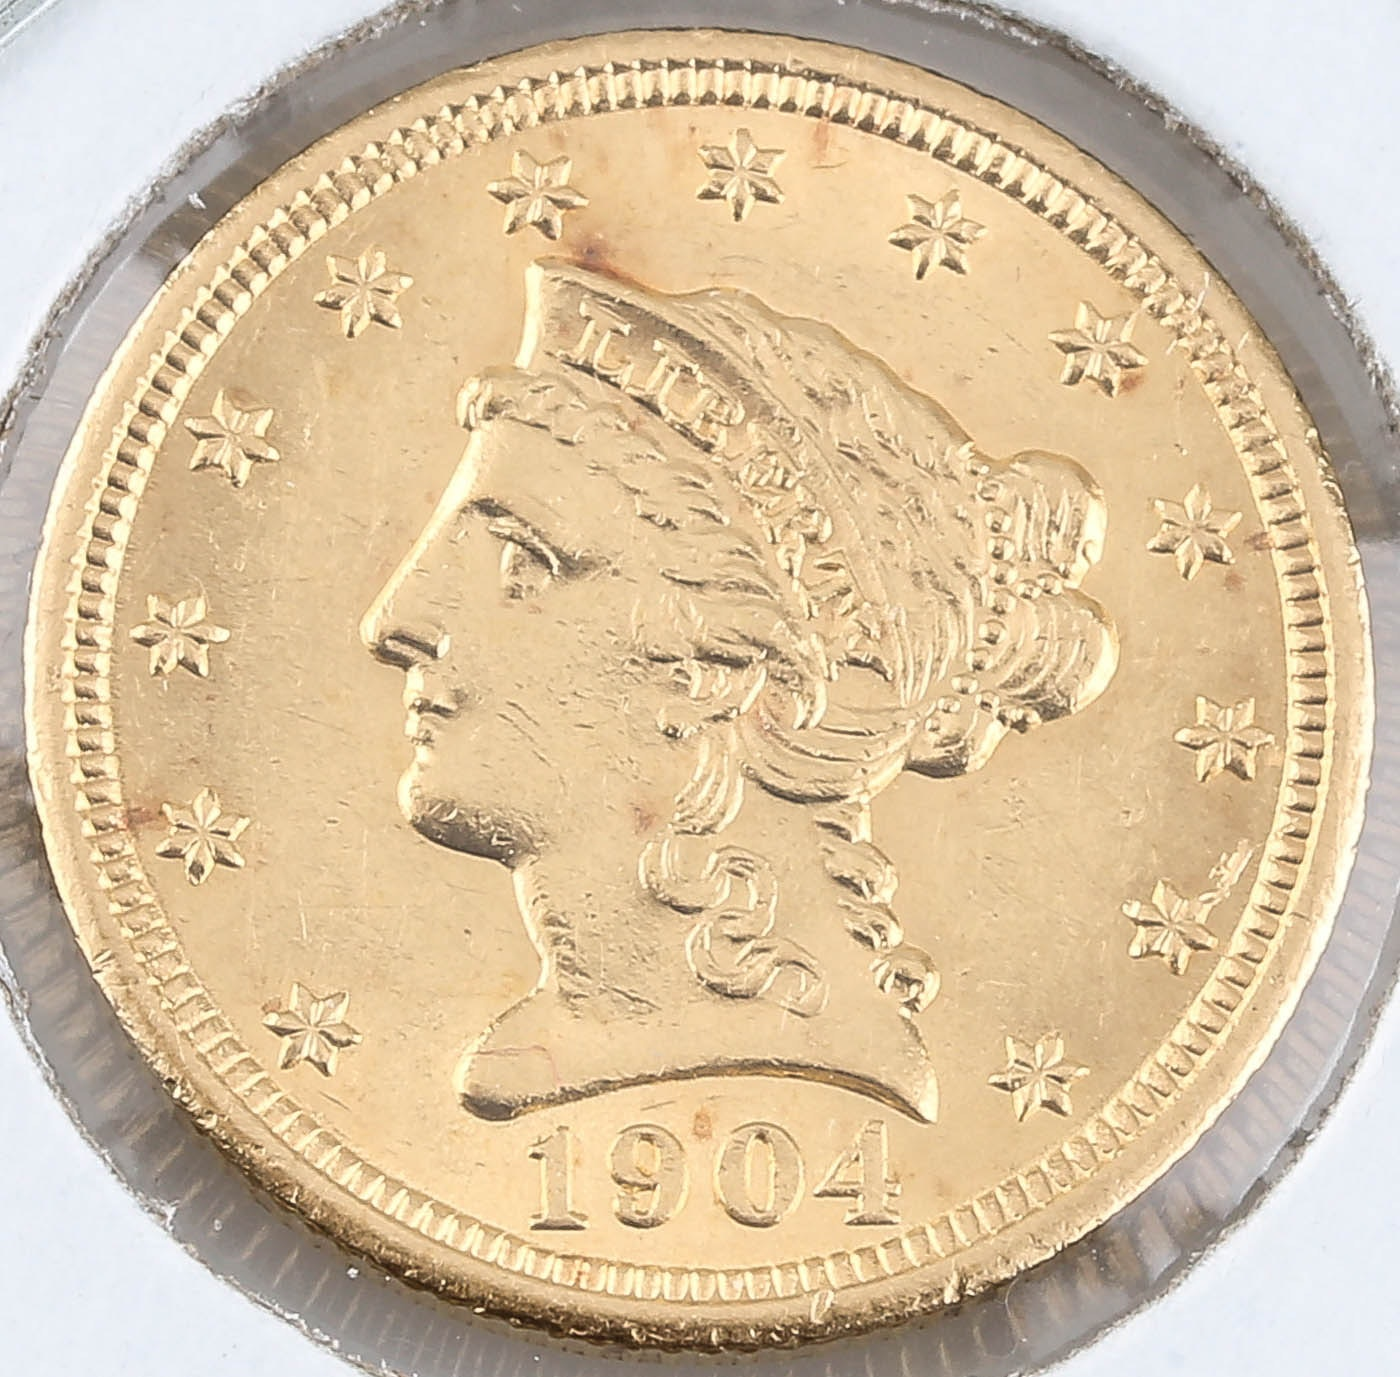 1904 Liberty Head $2 1/2 Gold Coin